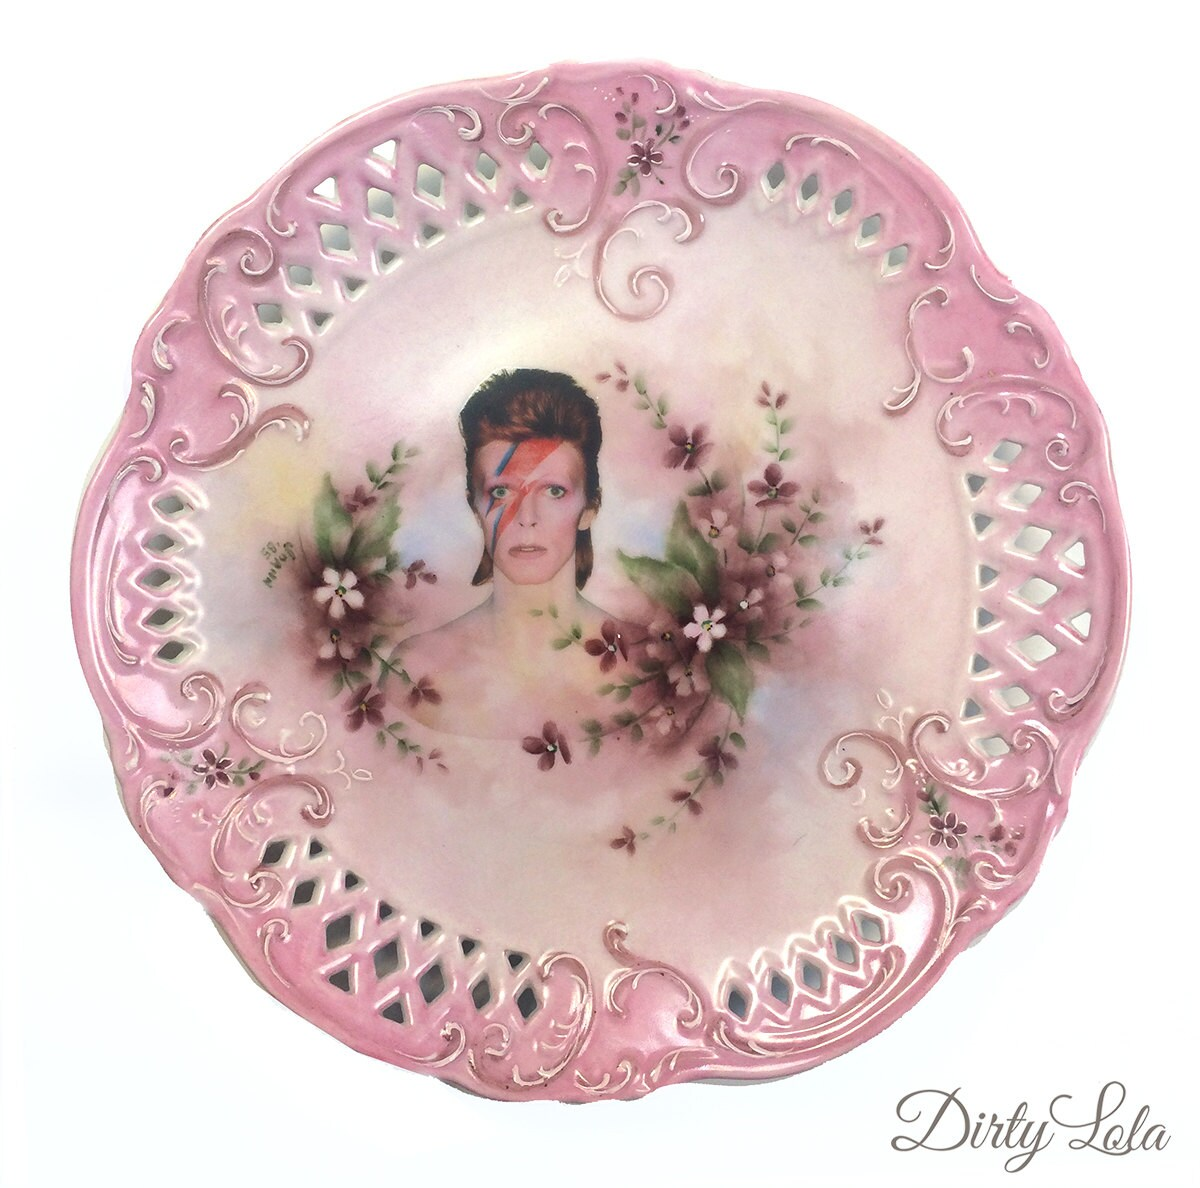 Vintage Illustrated David Bowie Plate Wall Display